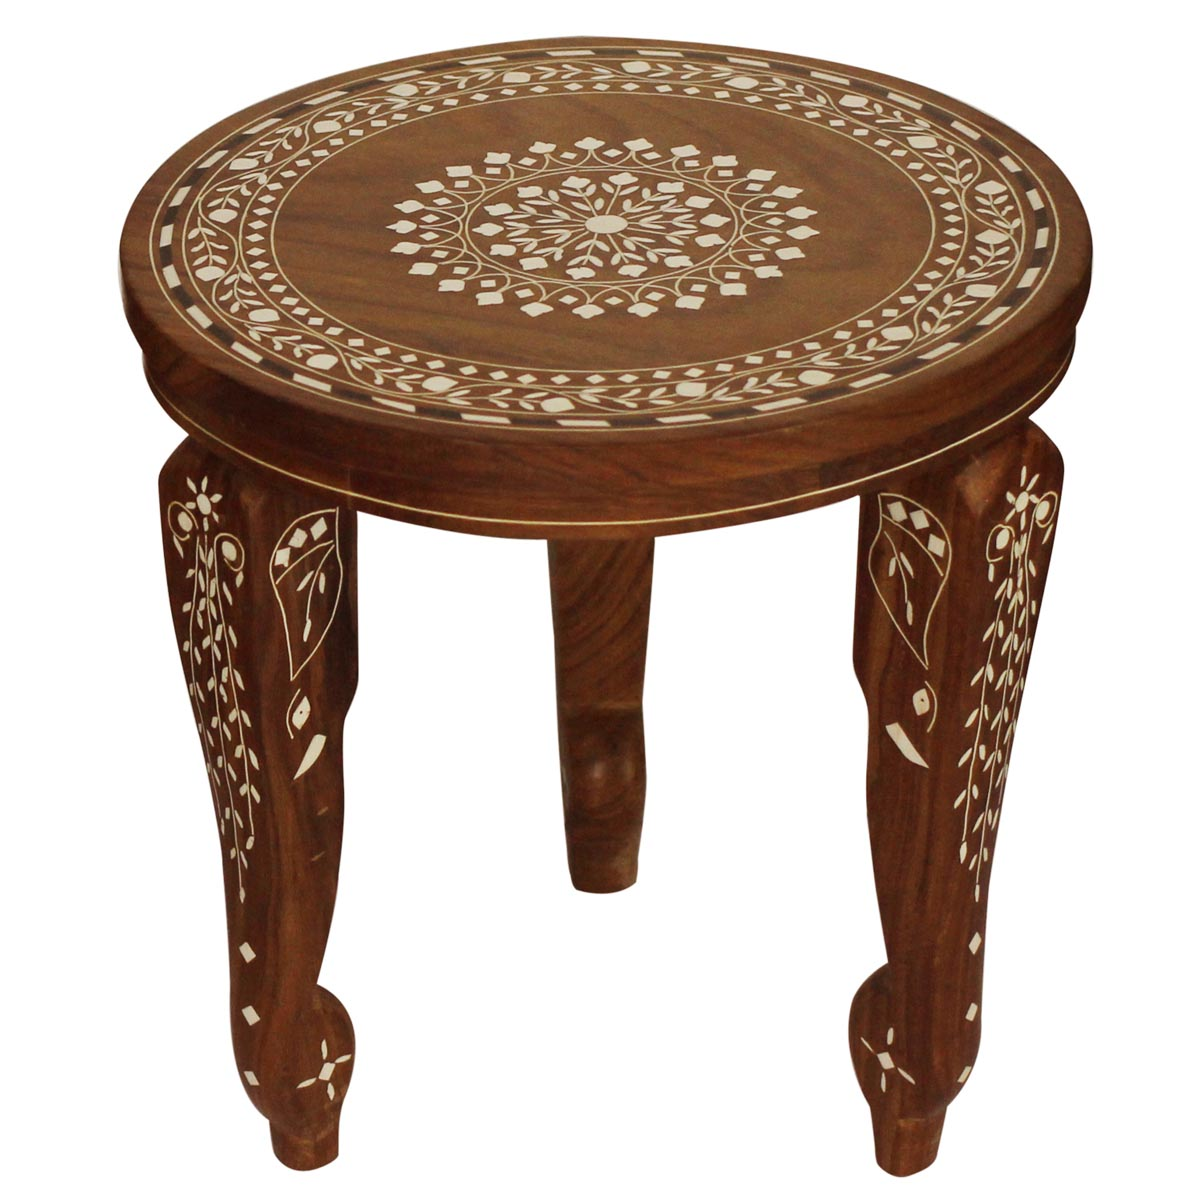 whole round wooden leg stand accent table with removable natural wood legs floral mandala acrylic small low end tables target shelf lamp drum bath beyond gift registry metal home